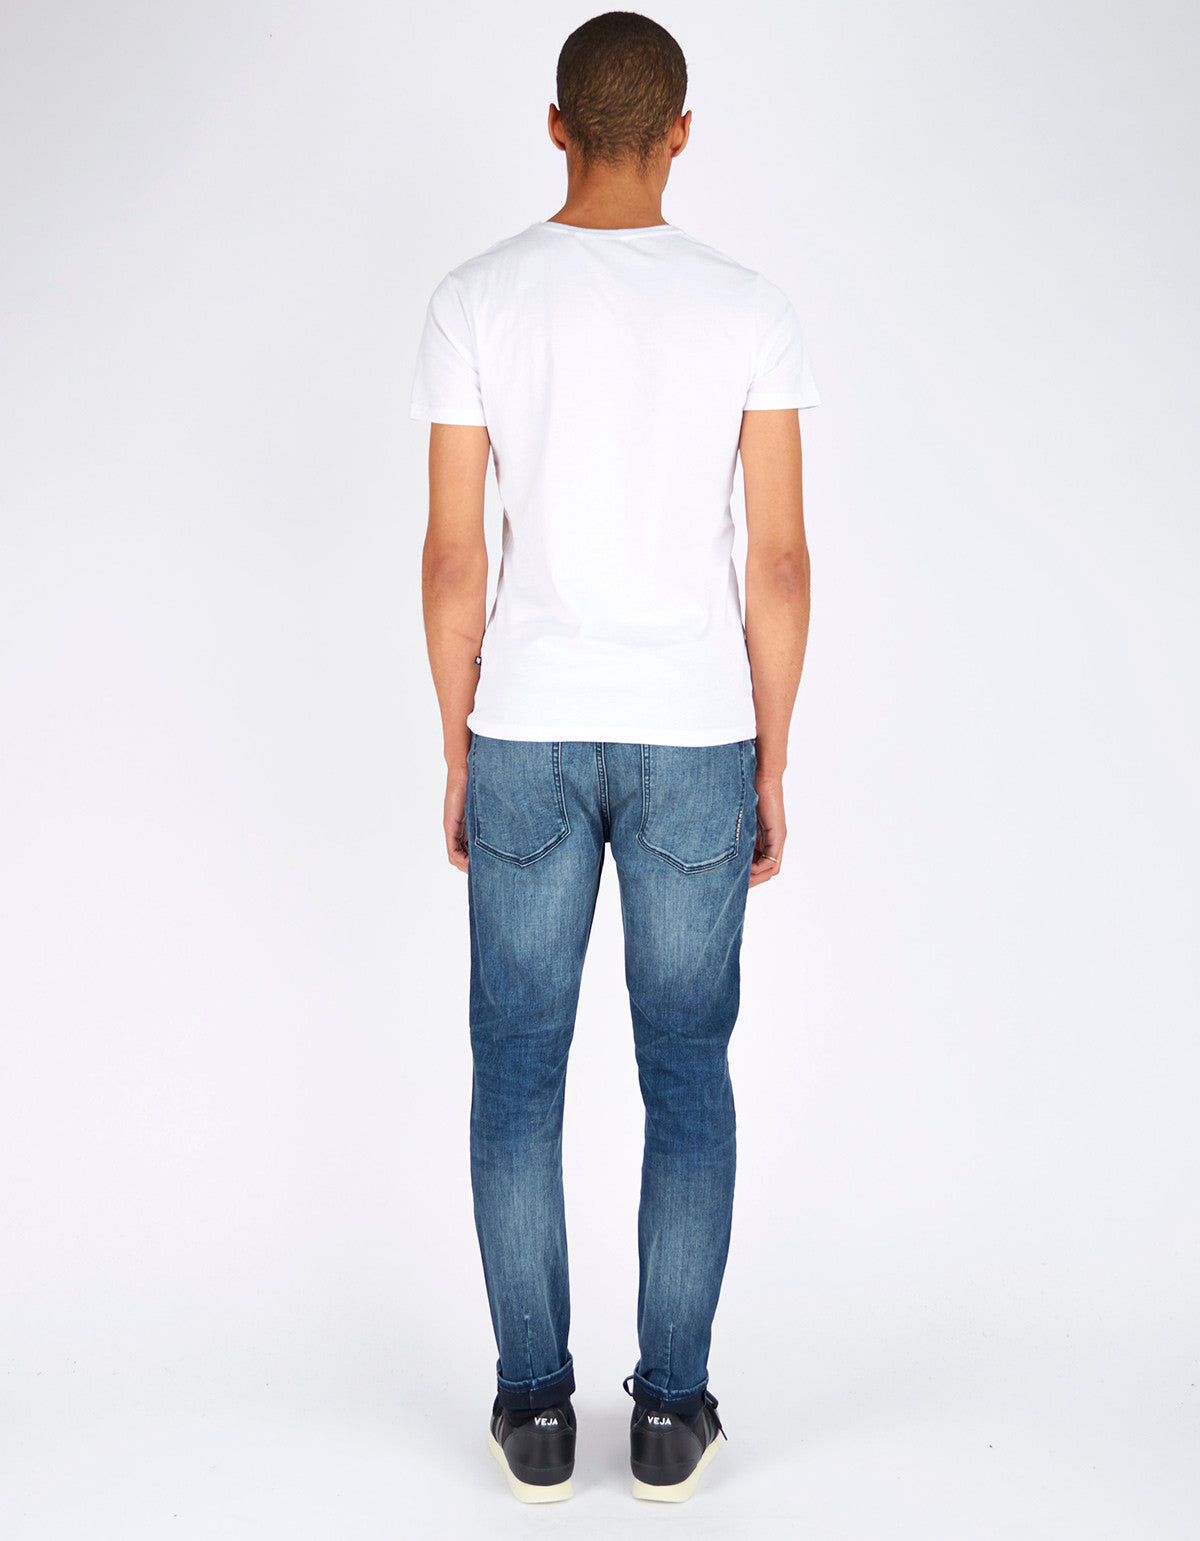 Neuw Ray Tapered Jean Blue Washed - Still Life - 3